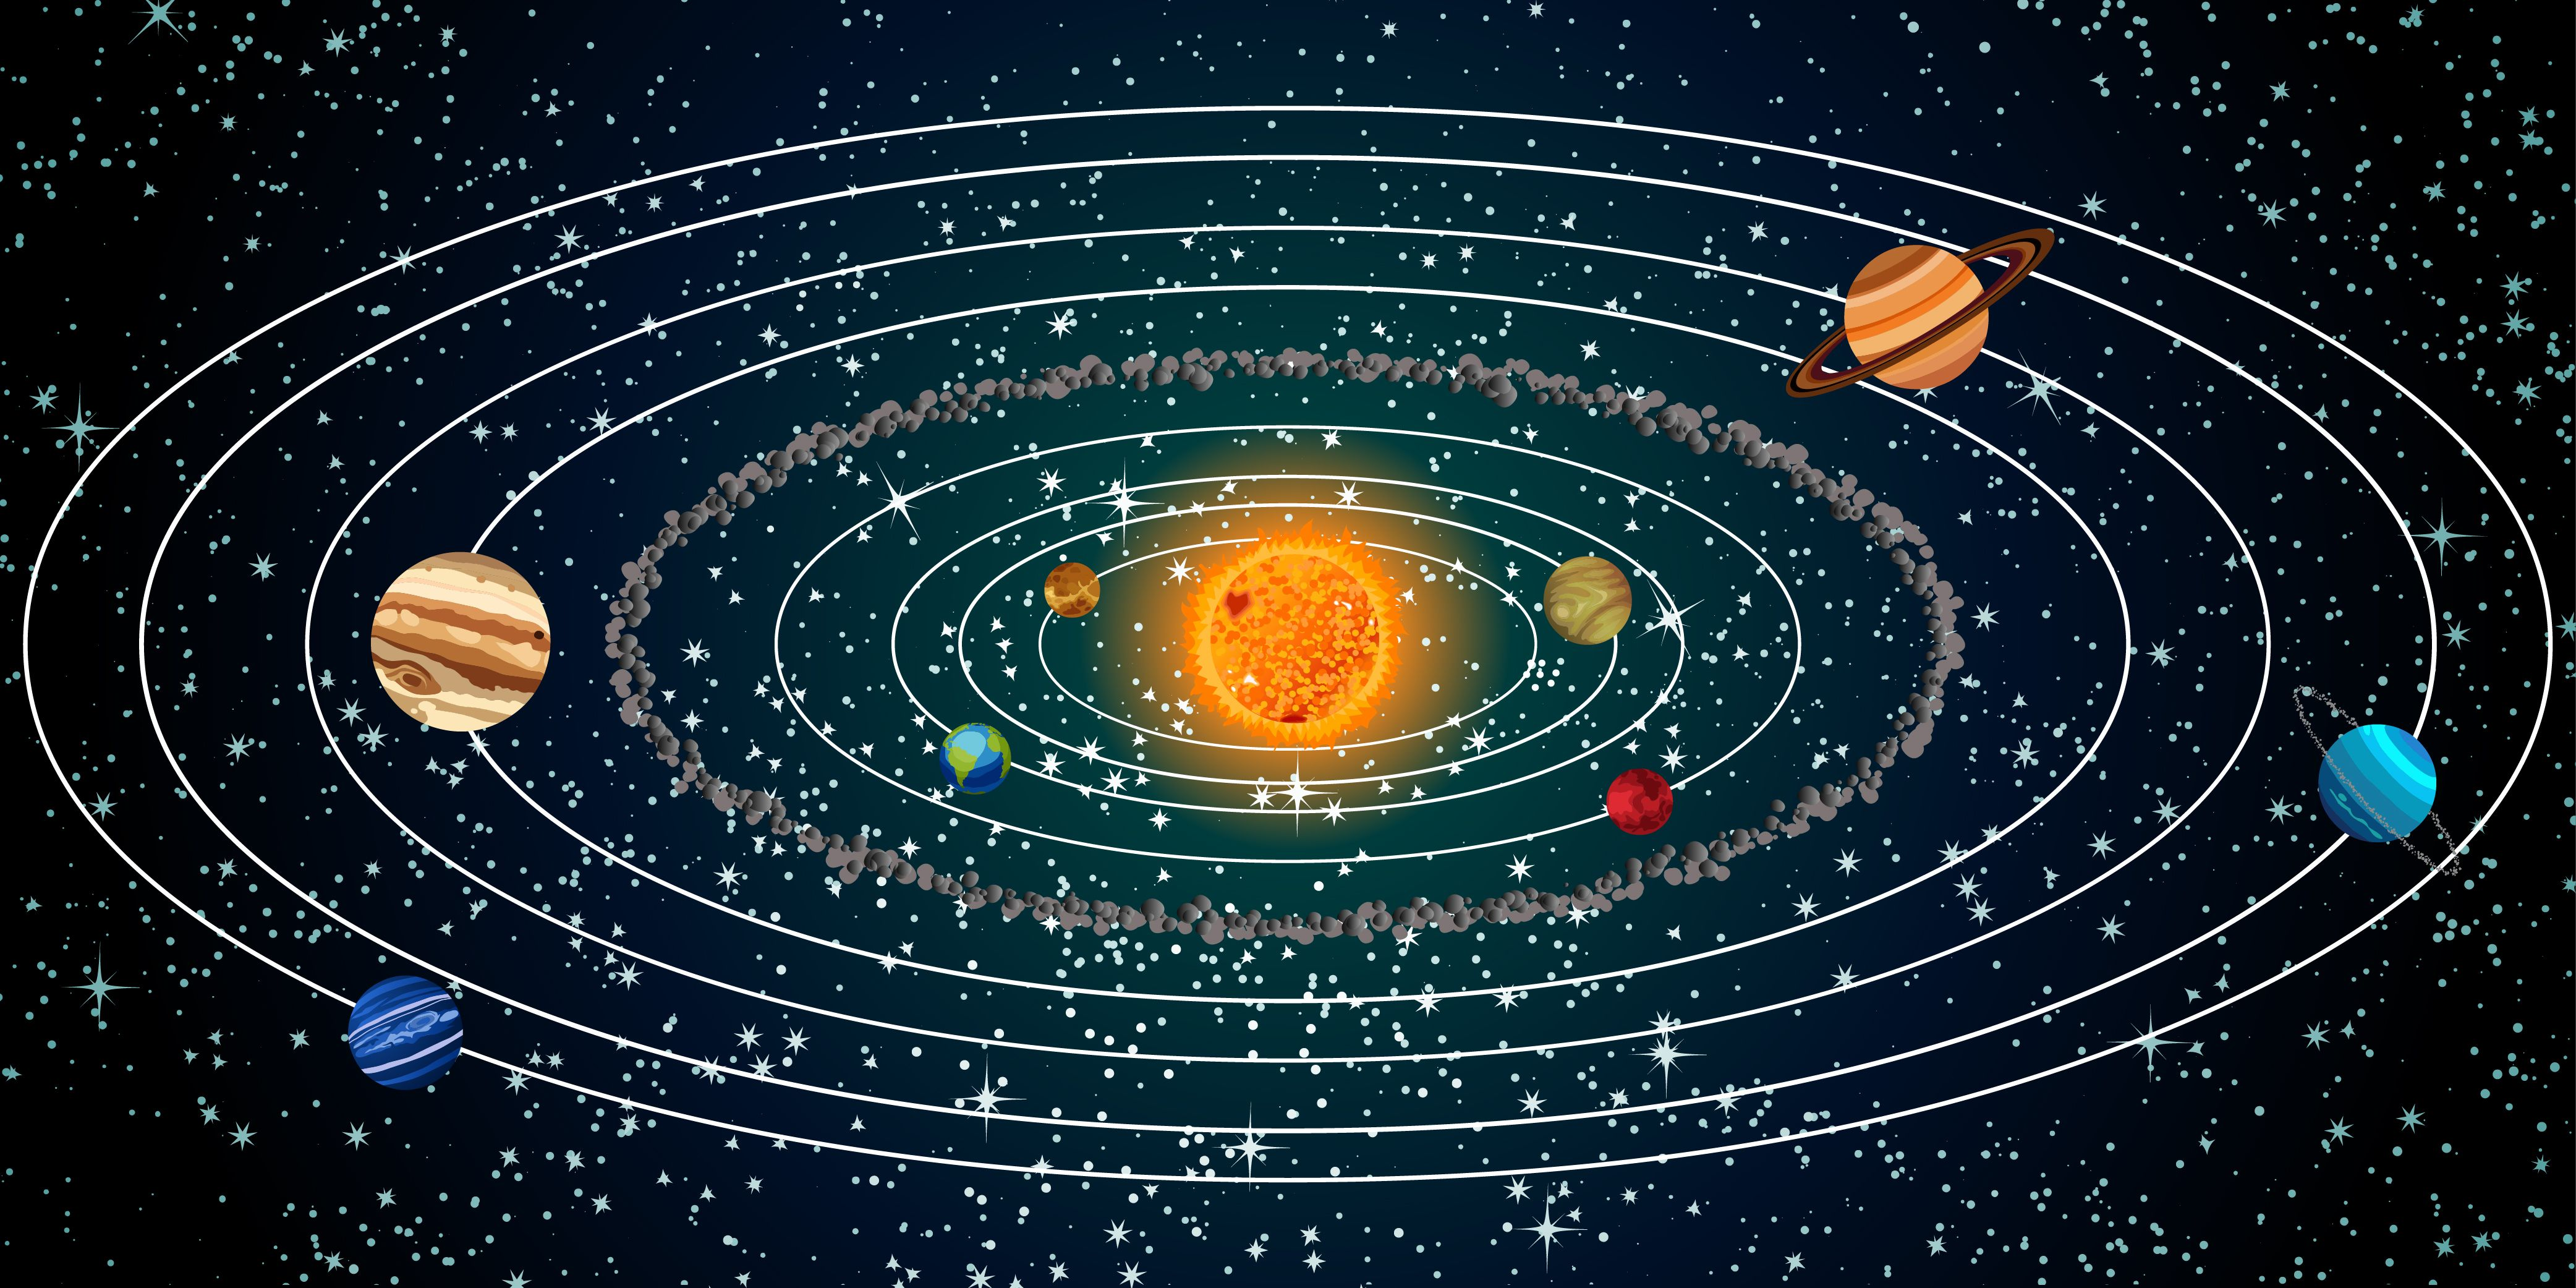 solar system planet order - Google Search   Trushna in ...